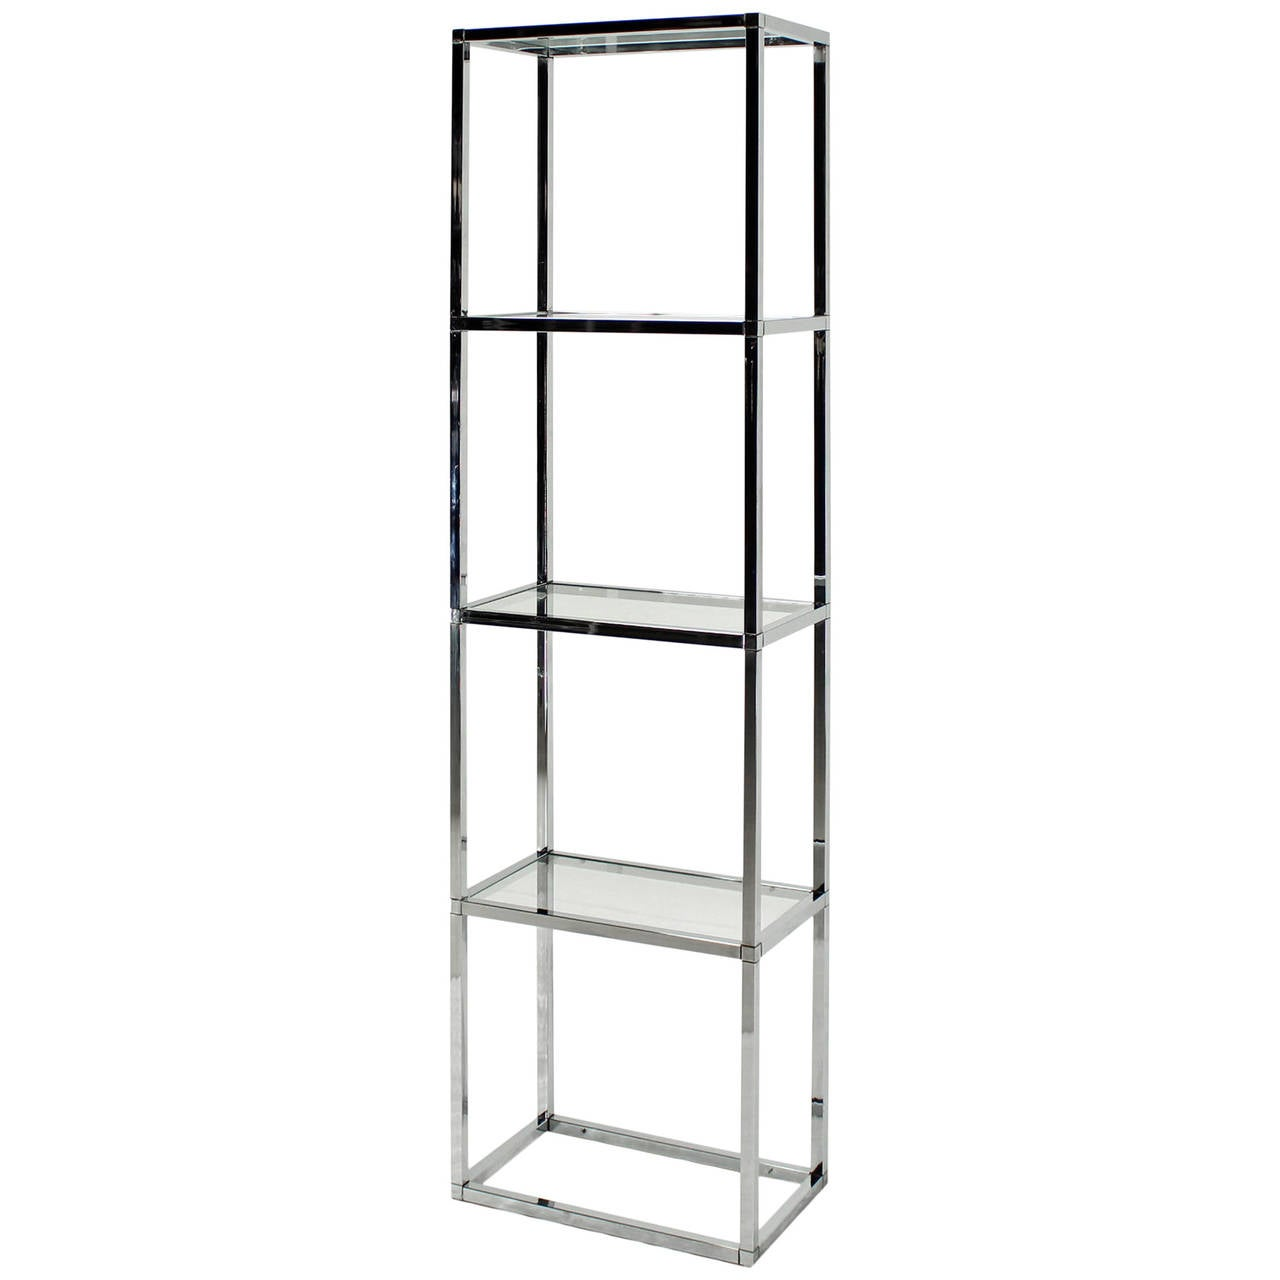 Narrow and Tall Mid-Century Modern Chrome and Glass Etagere Shelf ...